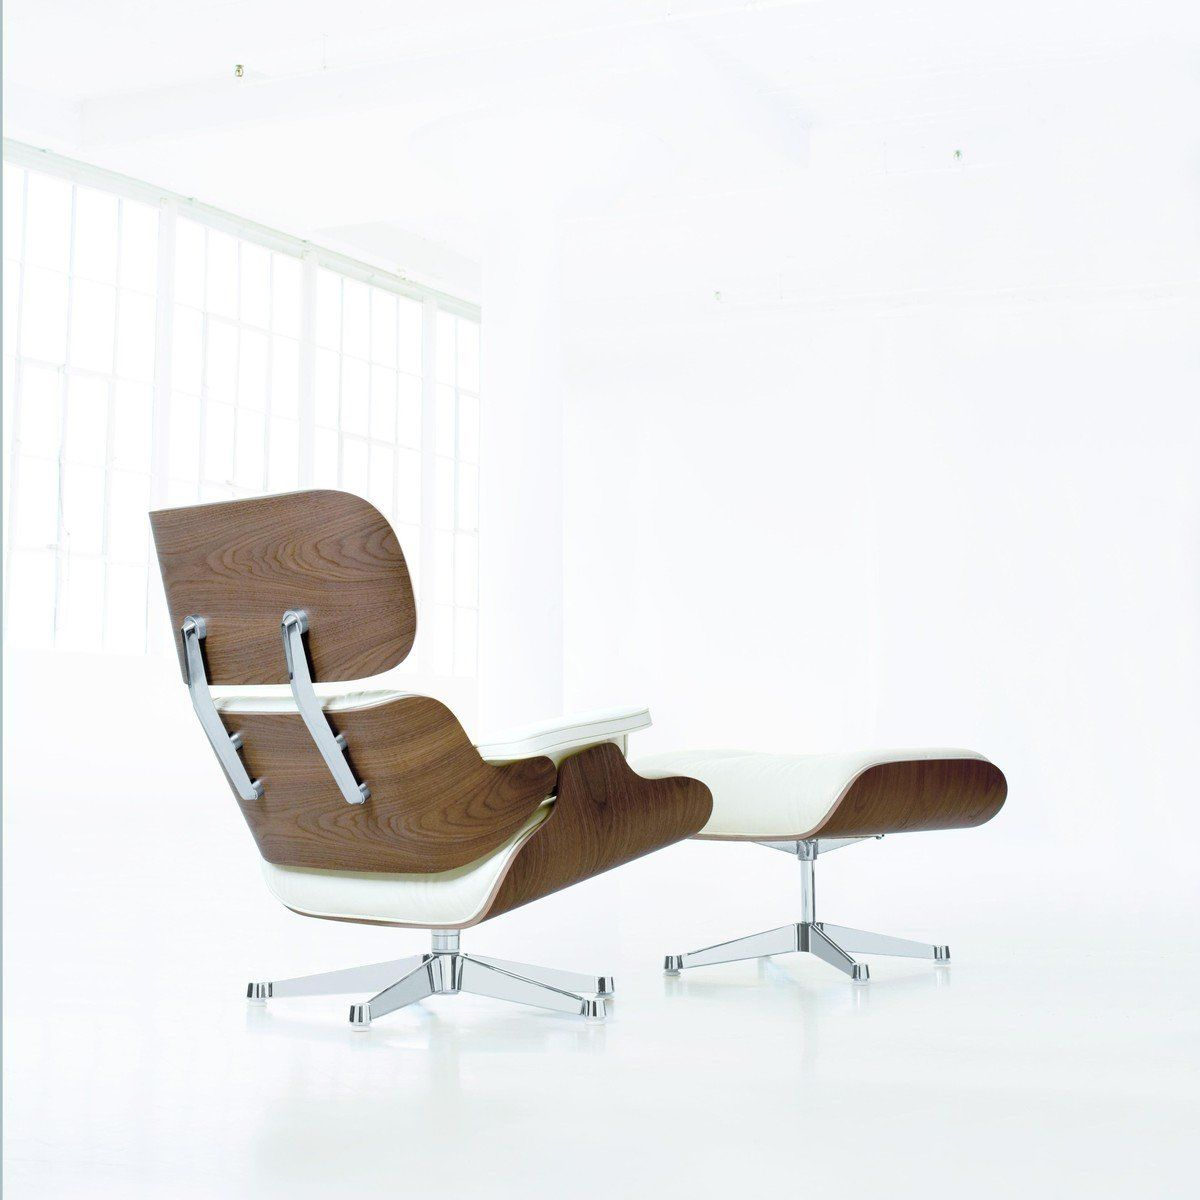 Vitra Eames Sessel Eames Lounge Chair Sessel And Ottoman Vitra